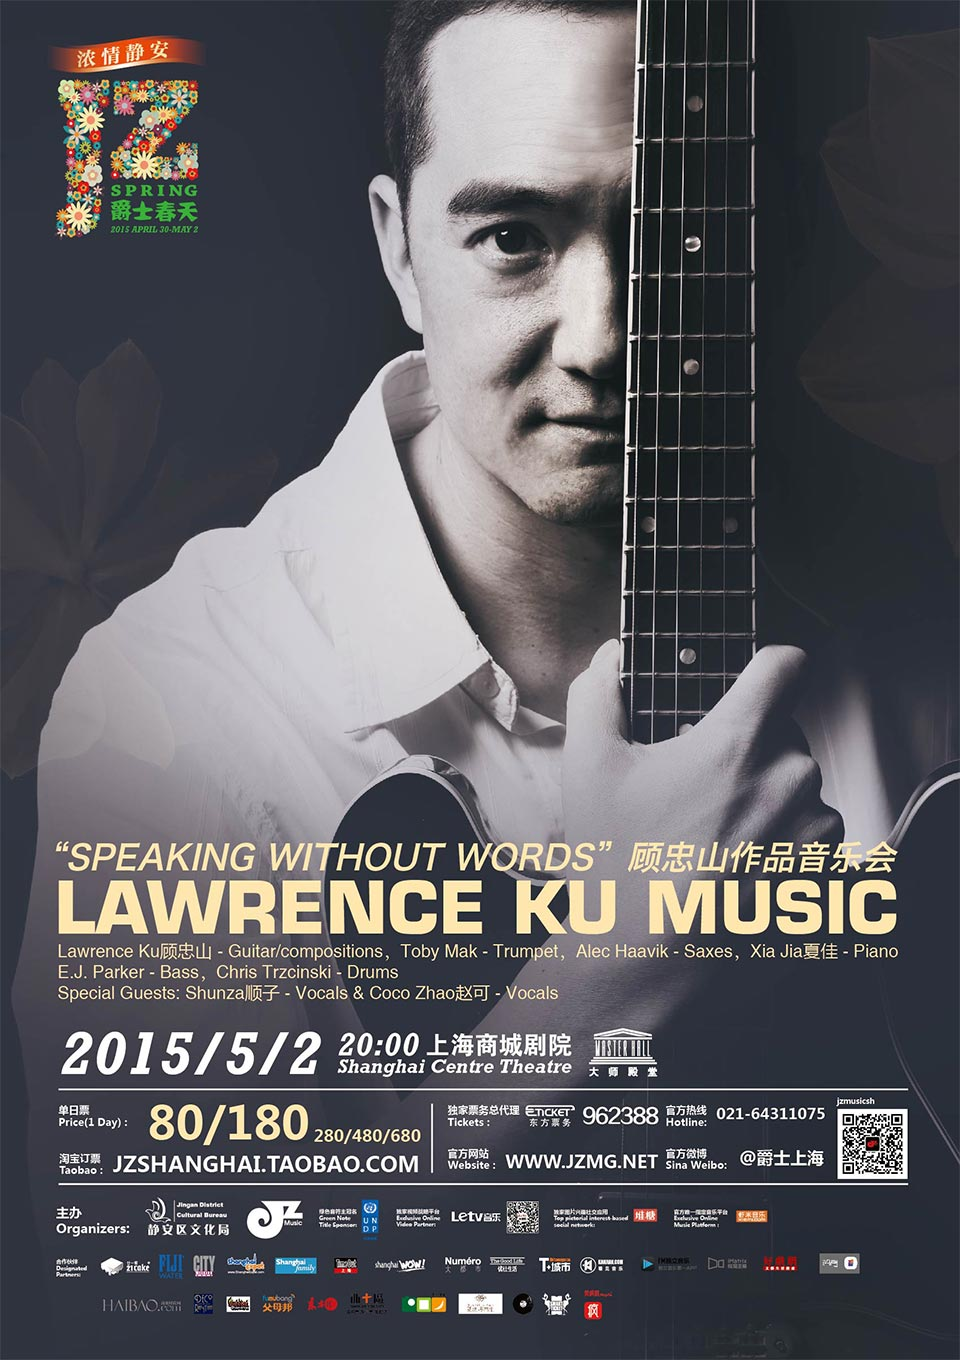 jz-spring-2015-lawrence-ku-music-masterhall-new